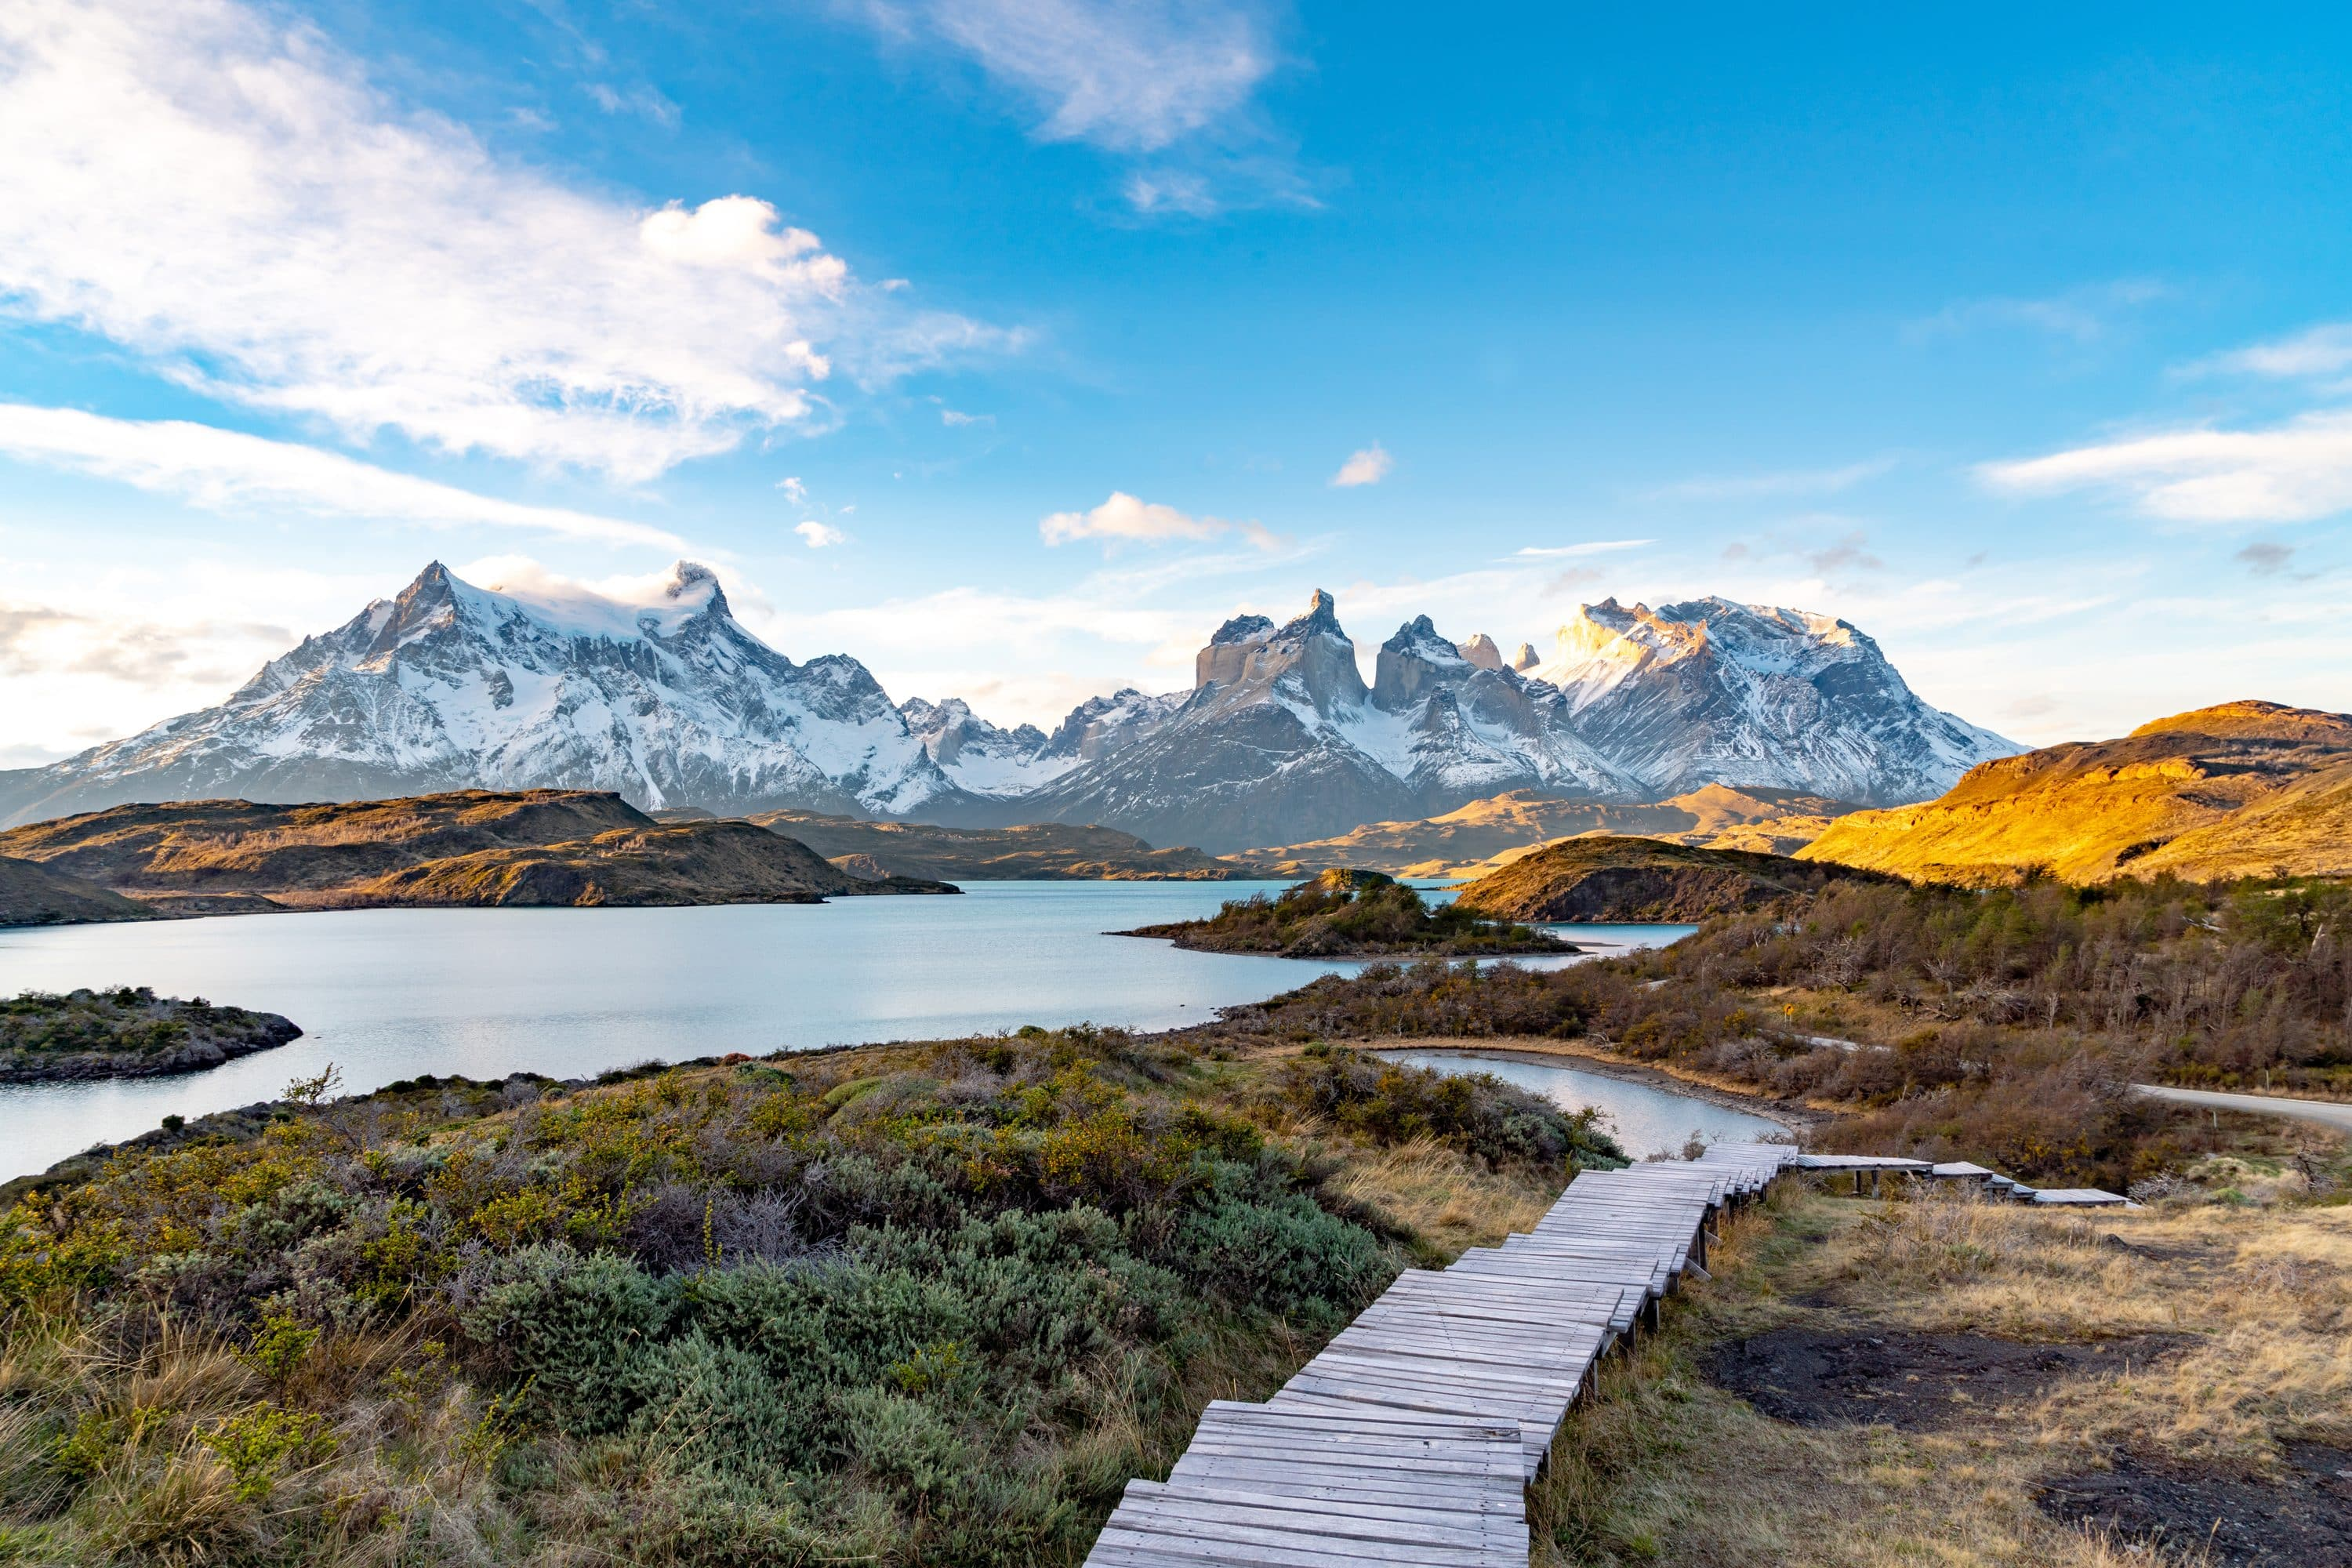 Snow-capped mountains backdrop a winding trail at the Torres del Paine, Patagonia